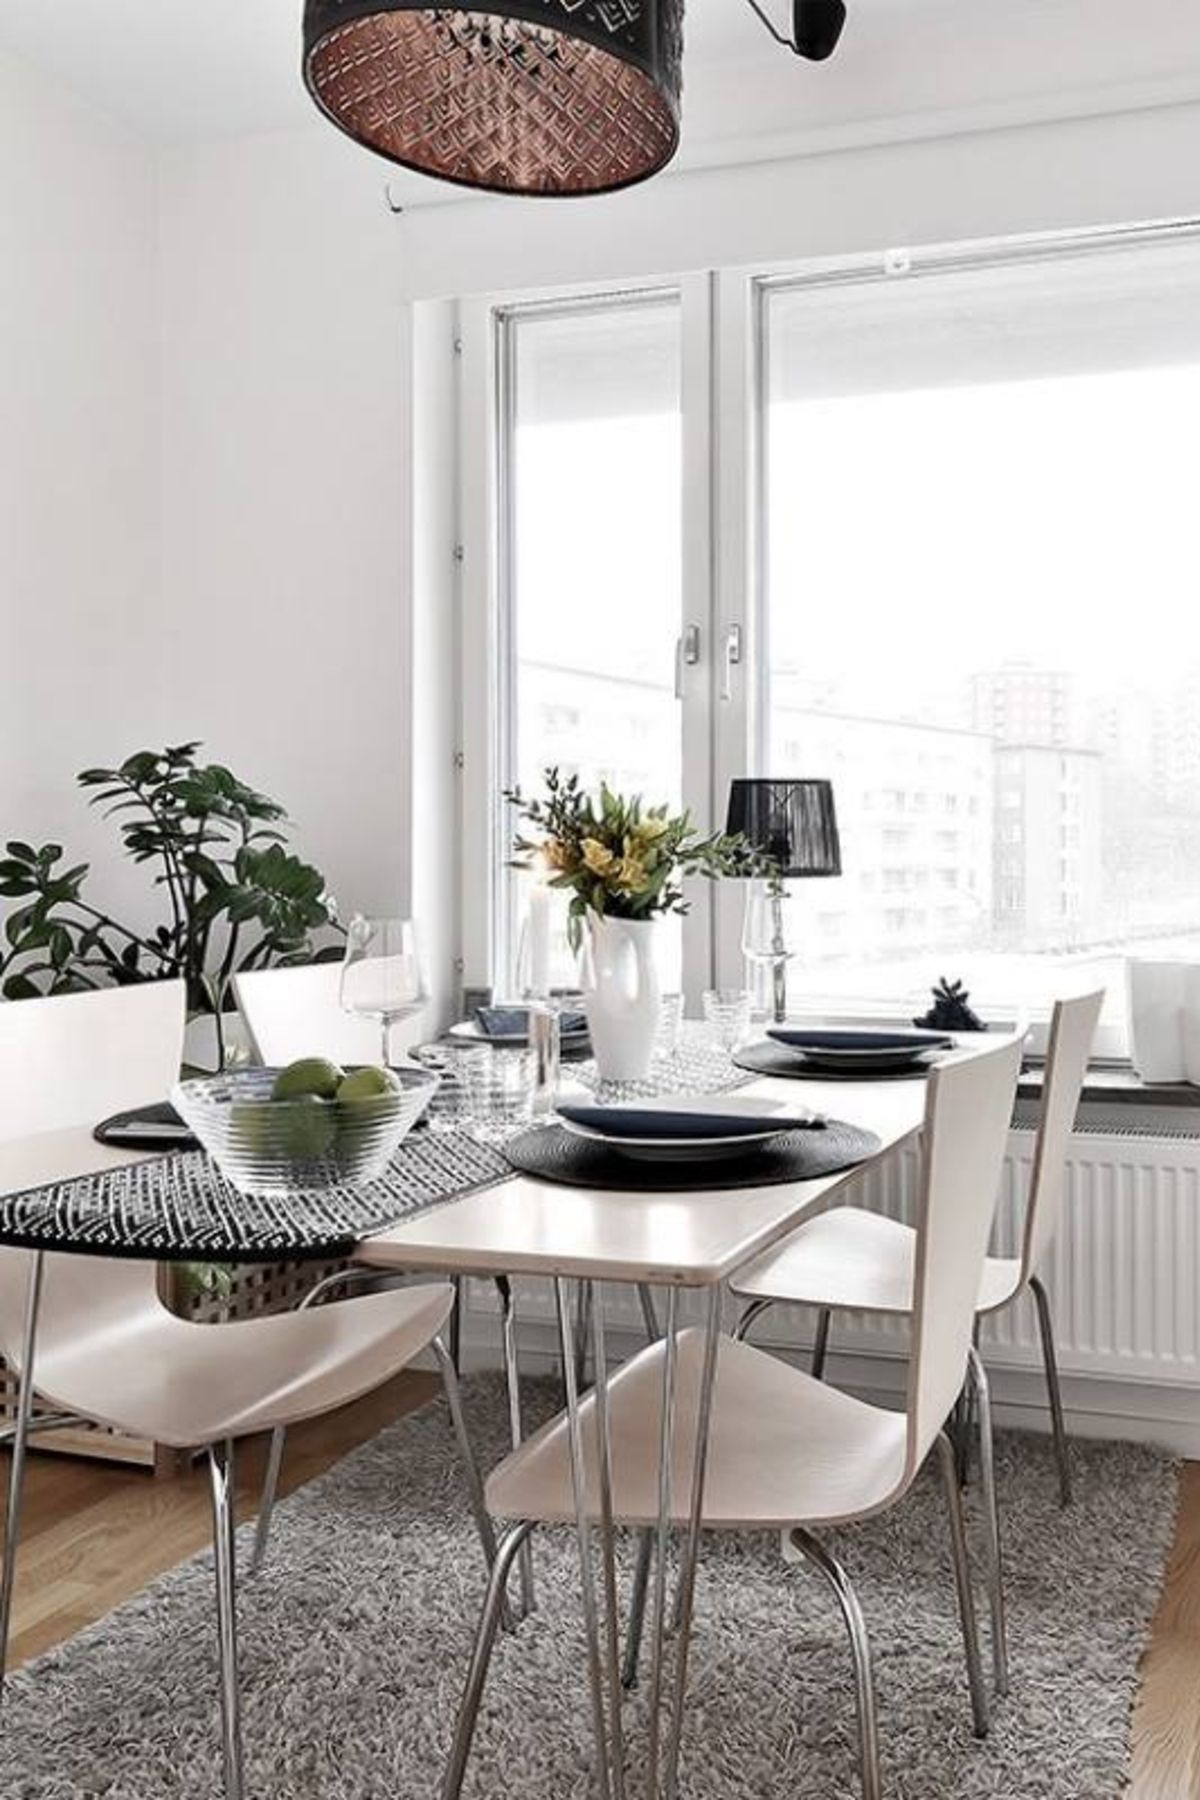 51 Scandinavian Stylish Dining Room Decor Ideas Dining Room